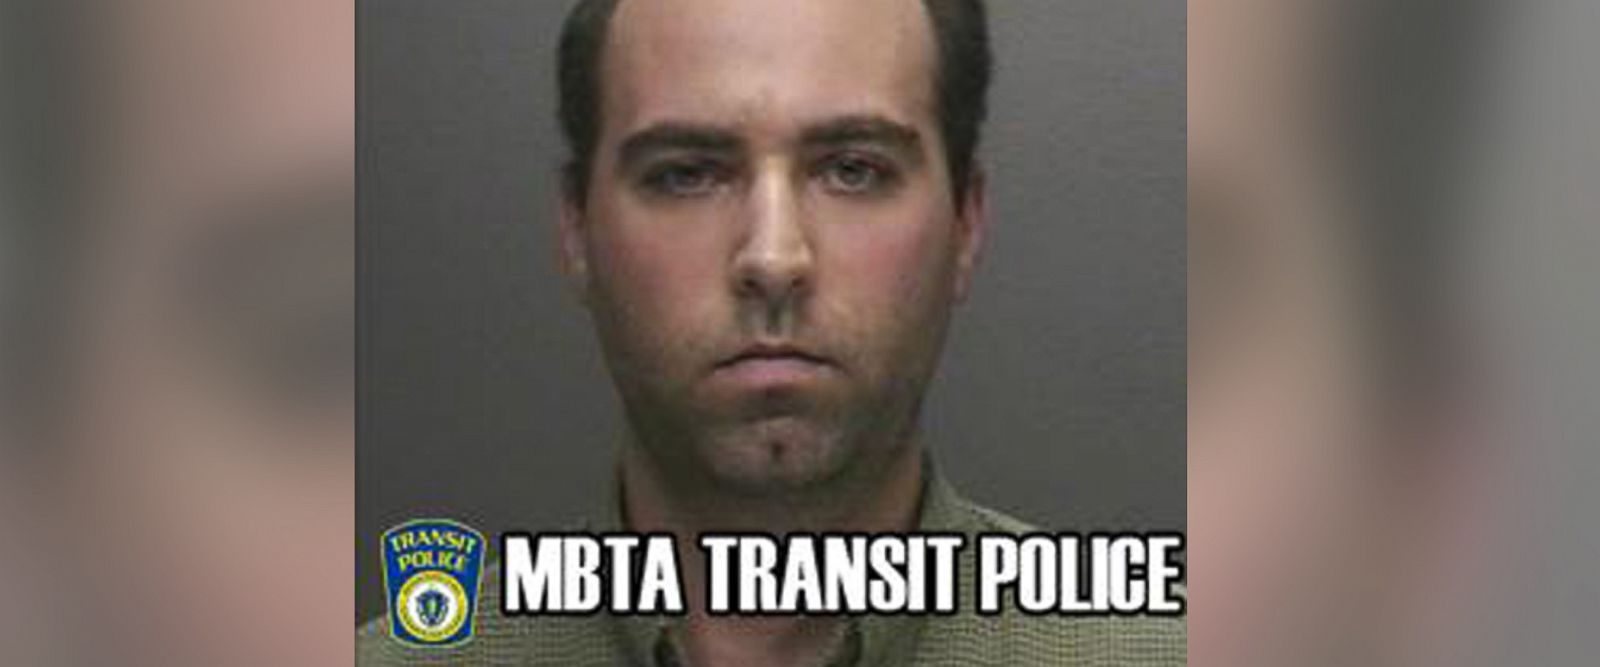 PHOTO: Michael Robertson was arrested for taking cell phone photos up the skirts of female passengers on the subway in 2010.